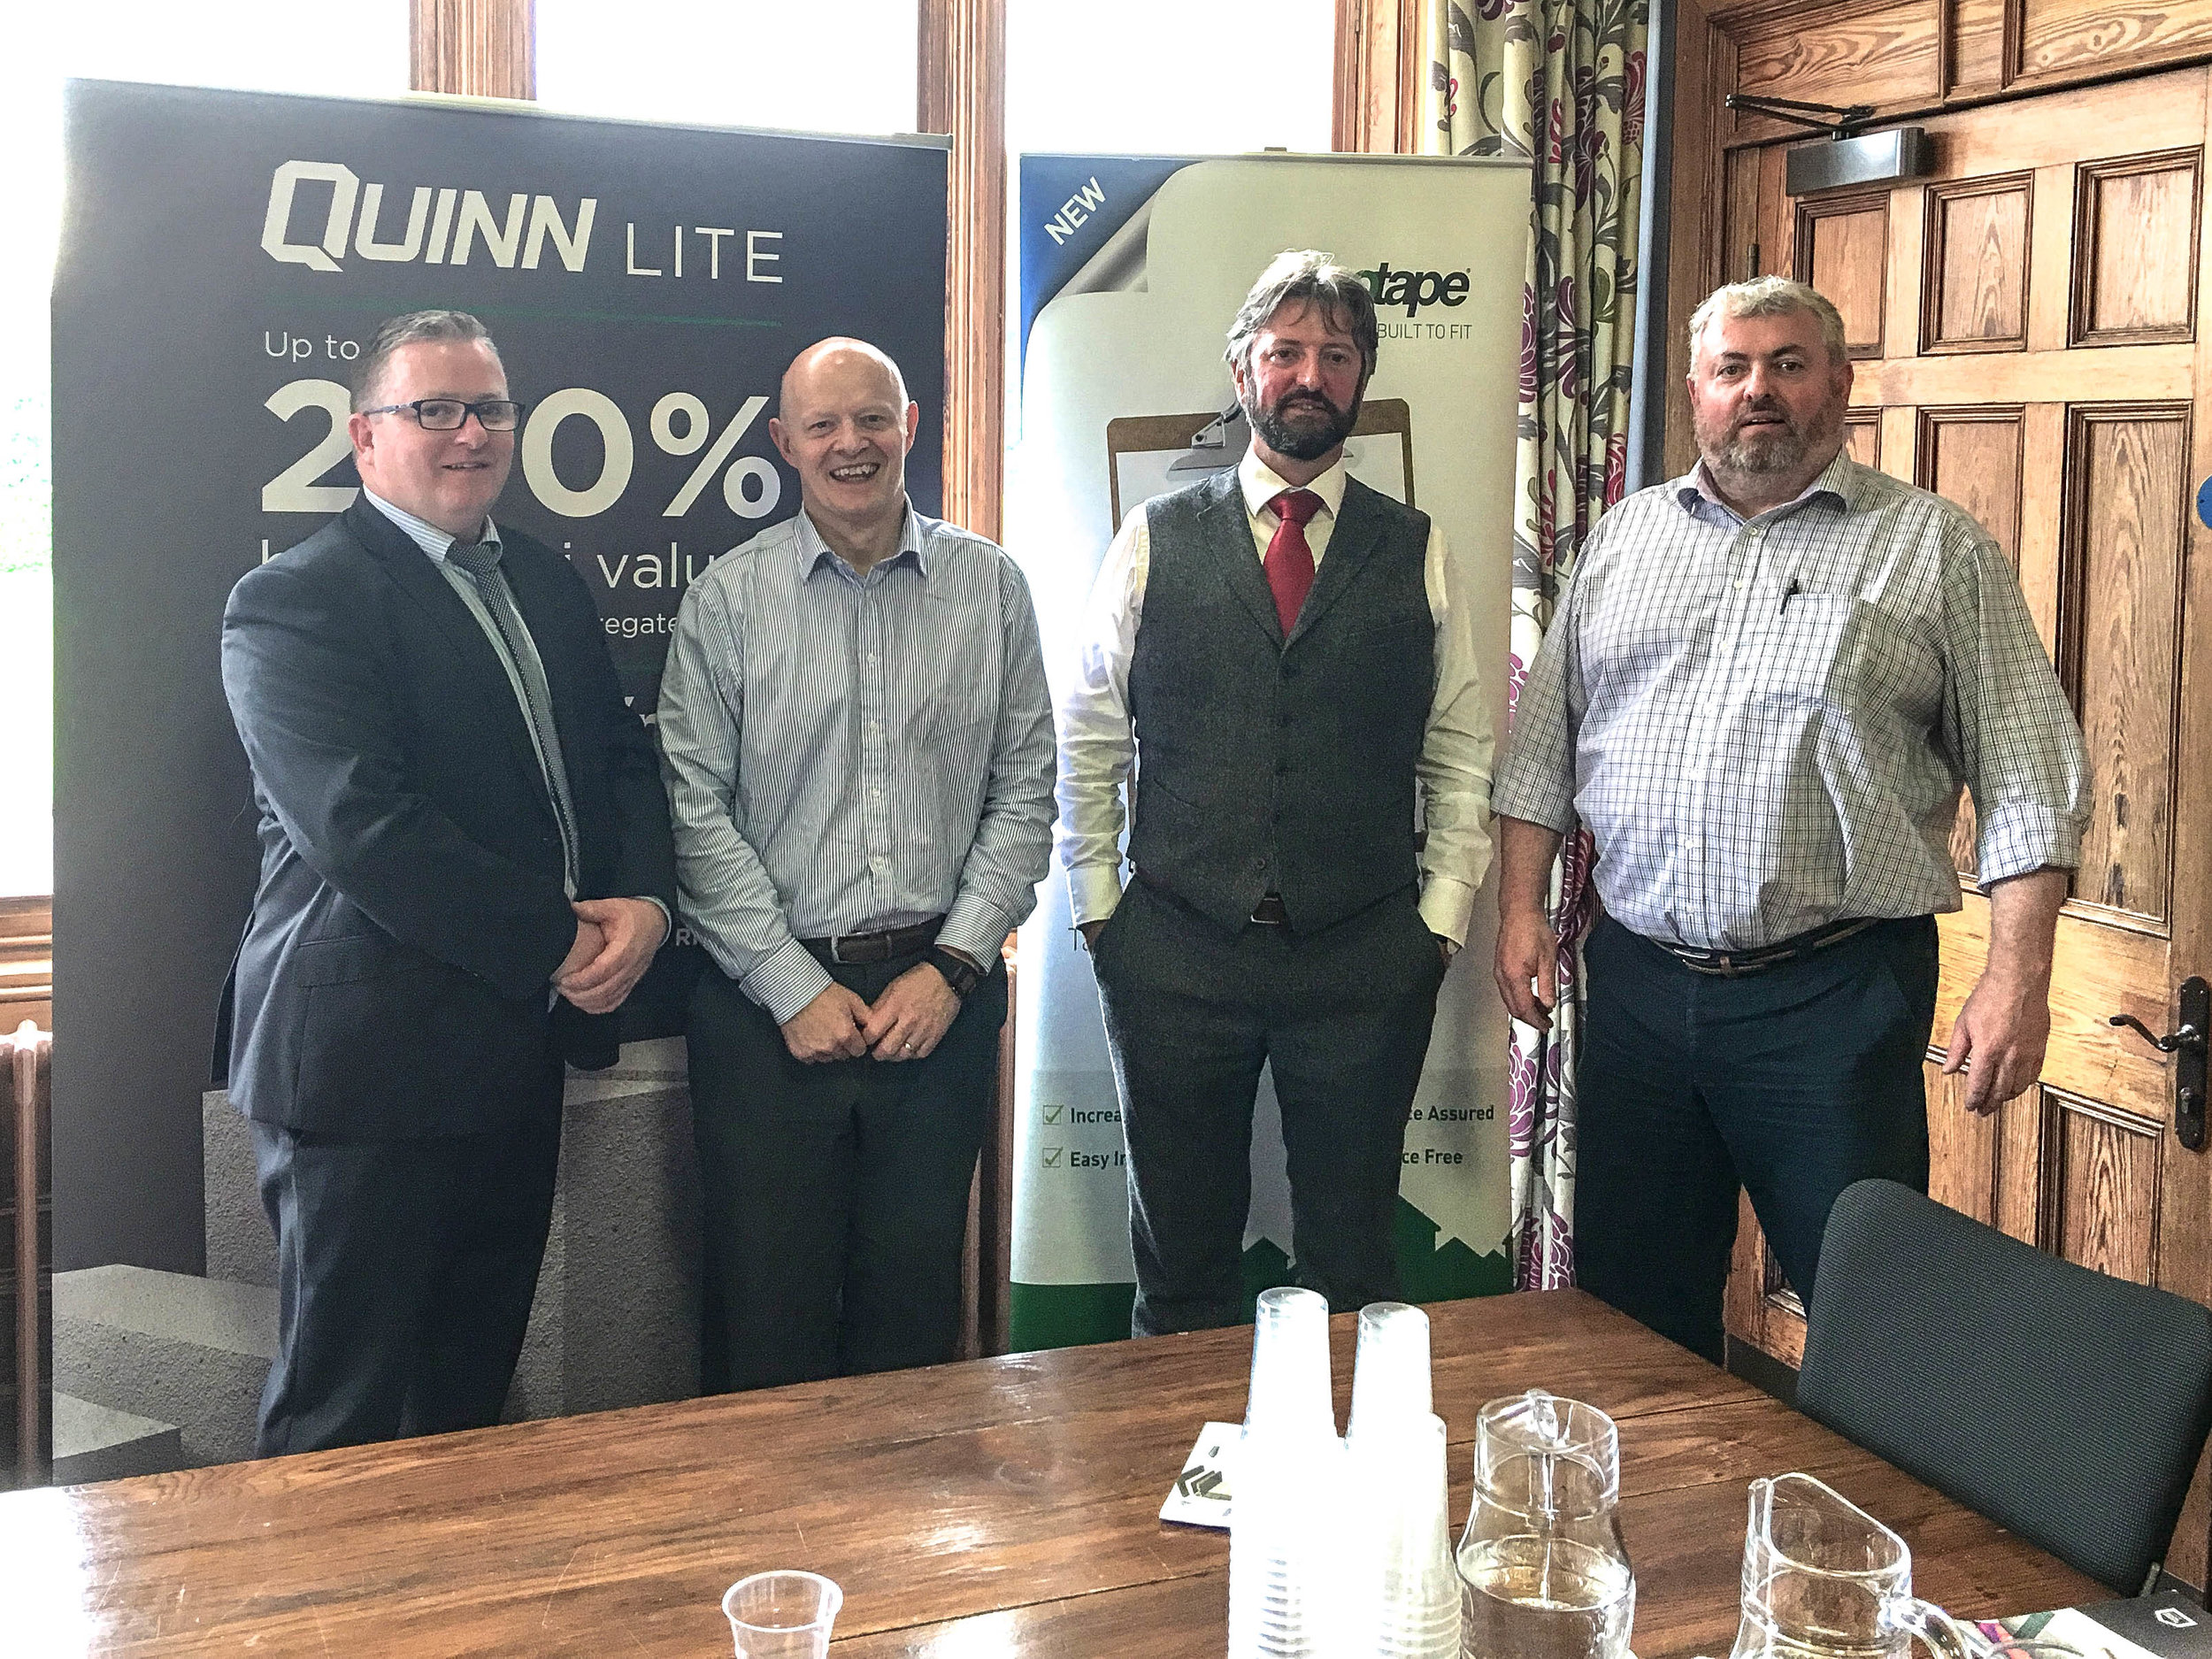 Speakers Declan Loane, Quinn Group, Paul McAlister Passive House Architect, Dr Shane Colclough- PHAI Vice-Chairman, Ulster University, Eddie Ward, Gapogroup